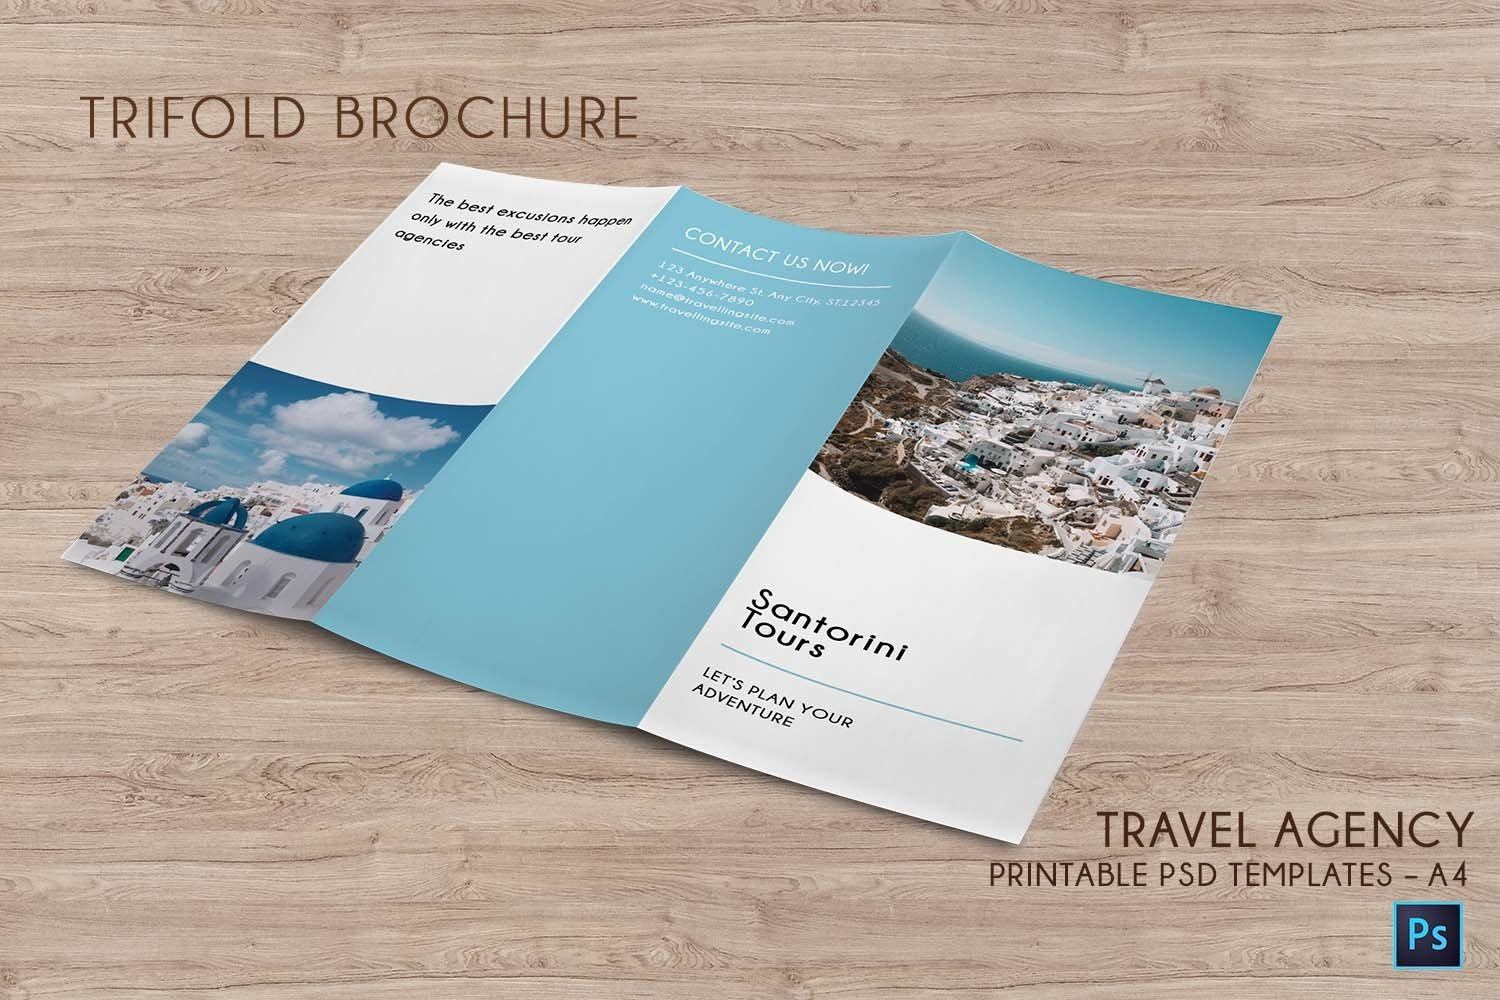 Trifold Agency Travel Brochure Editable PSD Templates example image 2